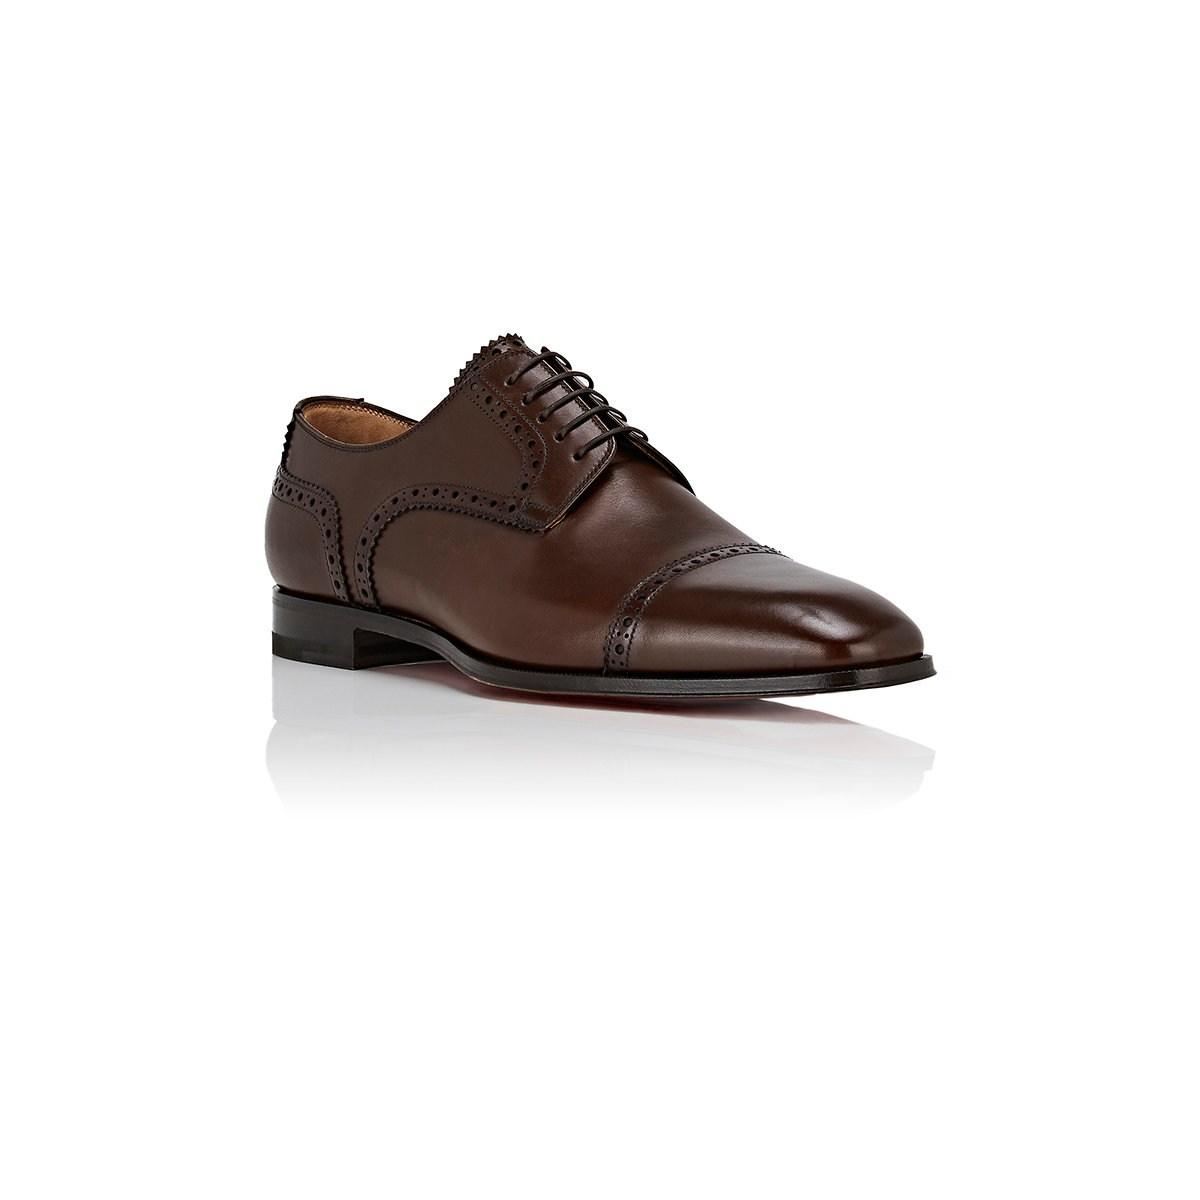 81cf218b6ee3 Christian Louboutin - Brown Cousin Charles Flat Leather Bluchers for Men -  Lyst. View fullscreen